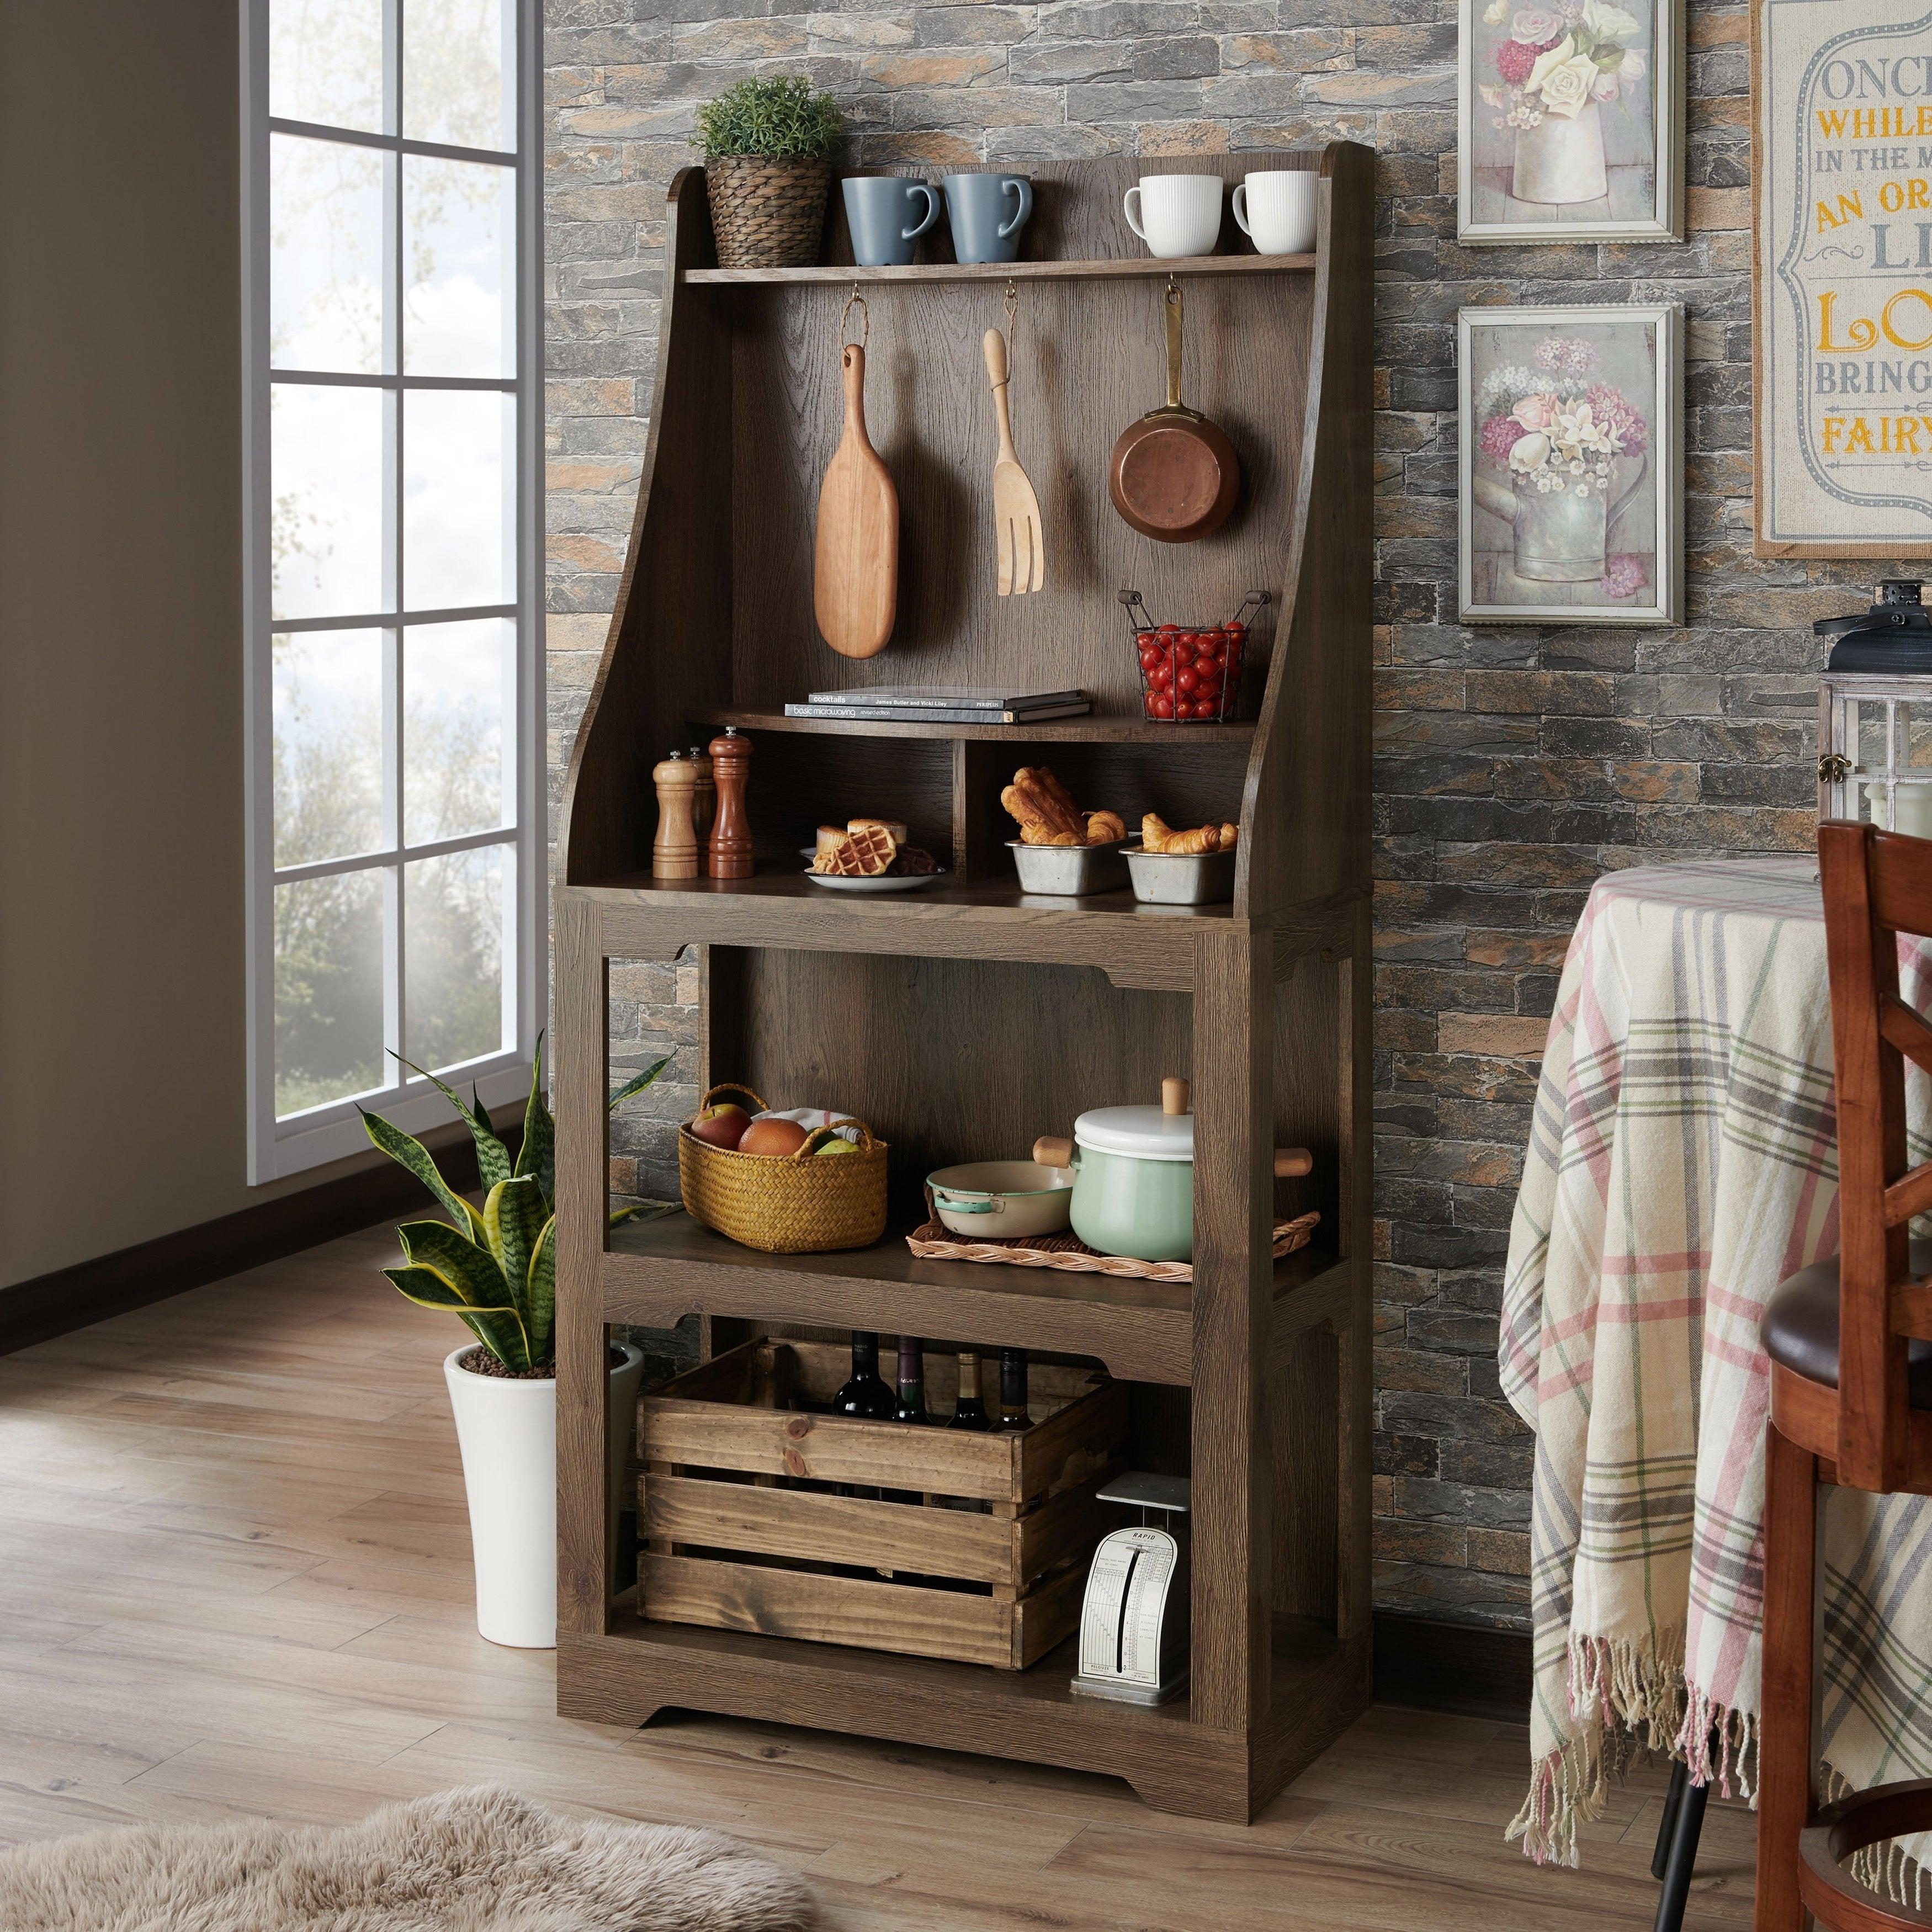 Buy Wood Kitchen Shelves Online at Overstock   Our Best ...